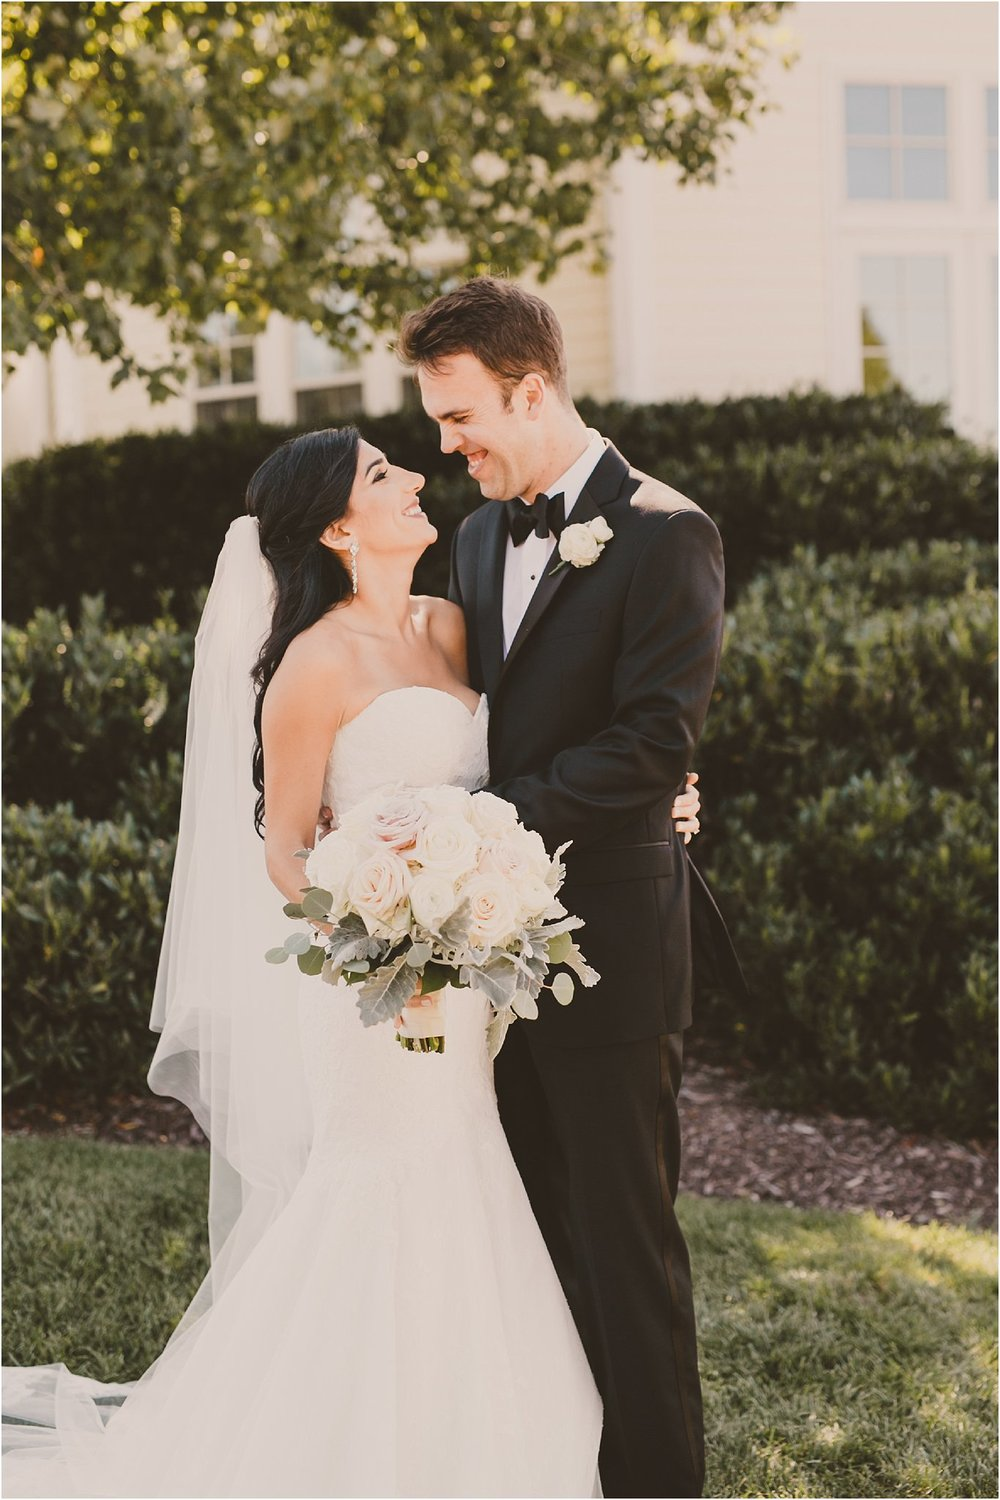 PattengalePhotography_BohoWedding_RichmondVirginia_Photographer_SevenSprings_Manor_Estate_Wedding_Mariam&Jay_Elegant_Fall_Bohemian_blush_gold_persian_glam_glamorous__0032.jpg